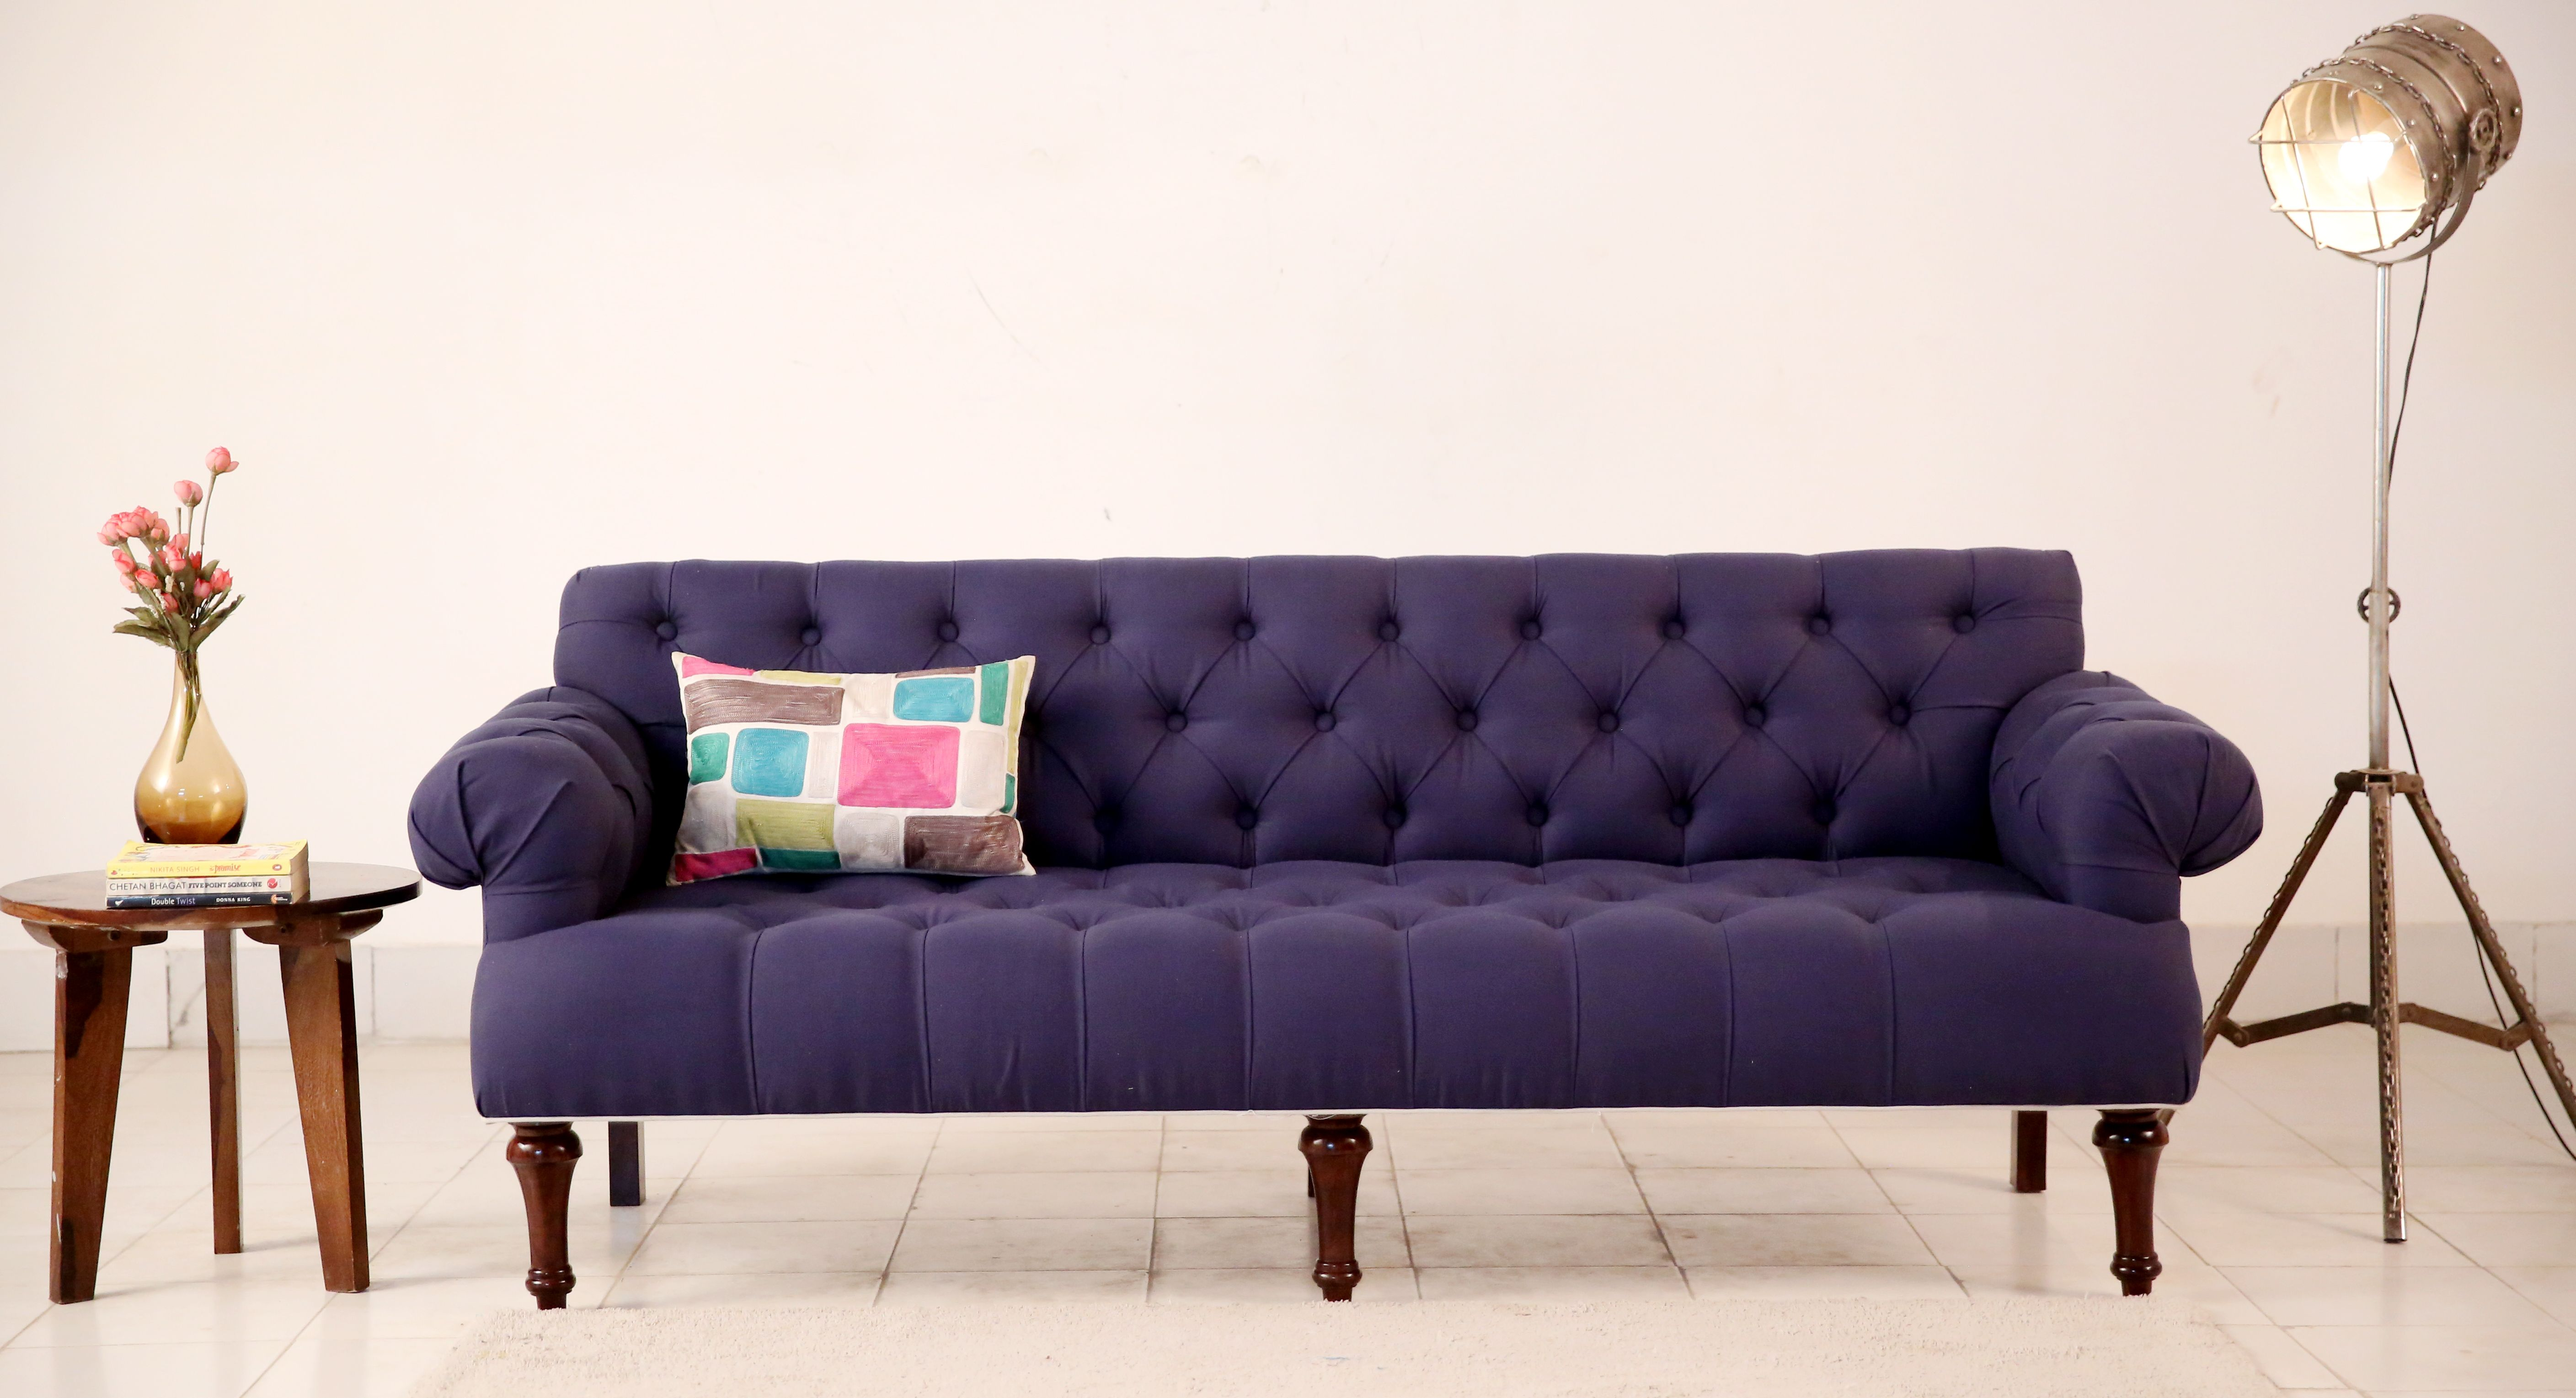 Buy Allison 3 Seater Sofa Fabric Indigo Ink Online In India Wooden Street Fabric Sofa 3 Seater Sofa Wooden Street